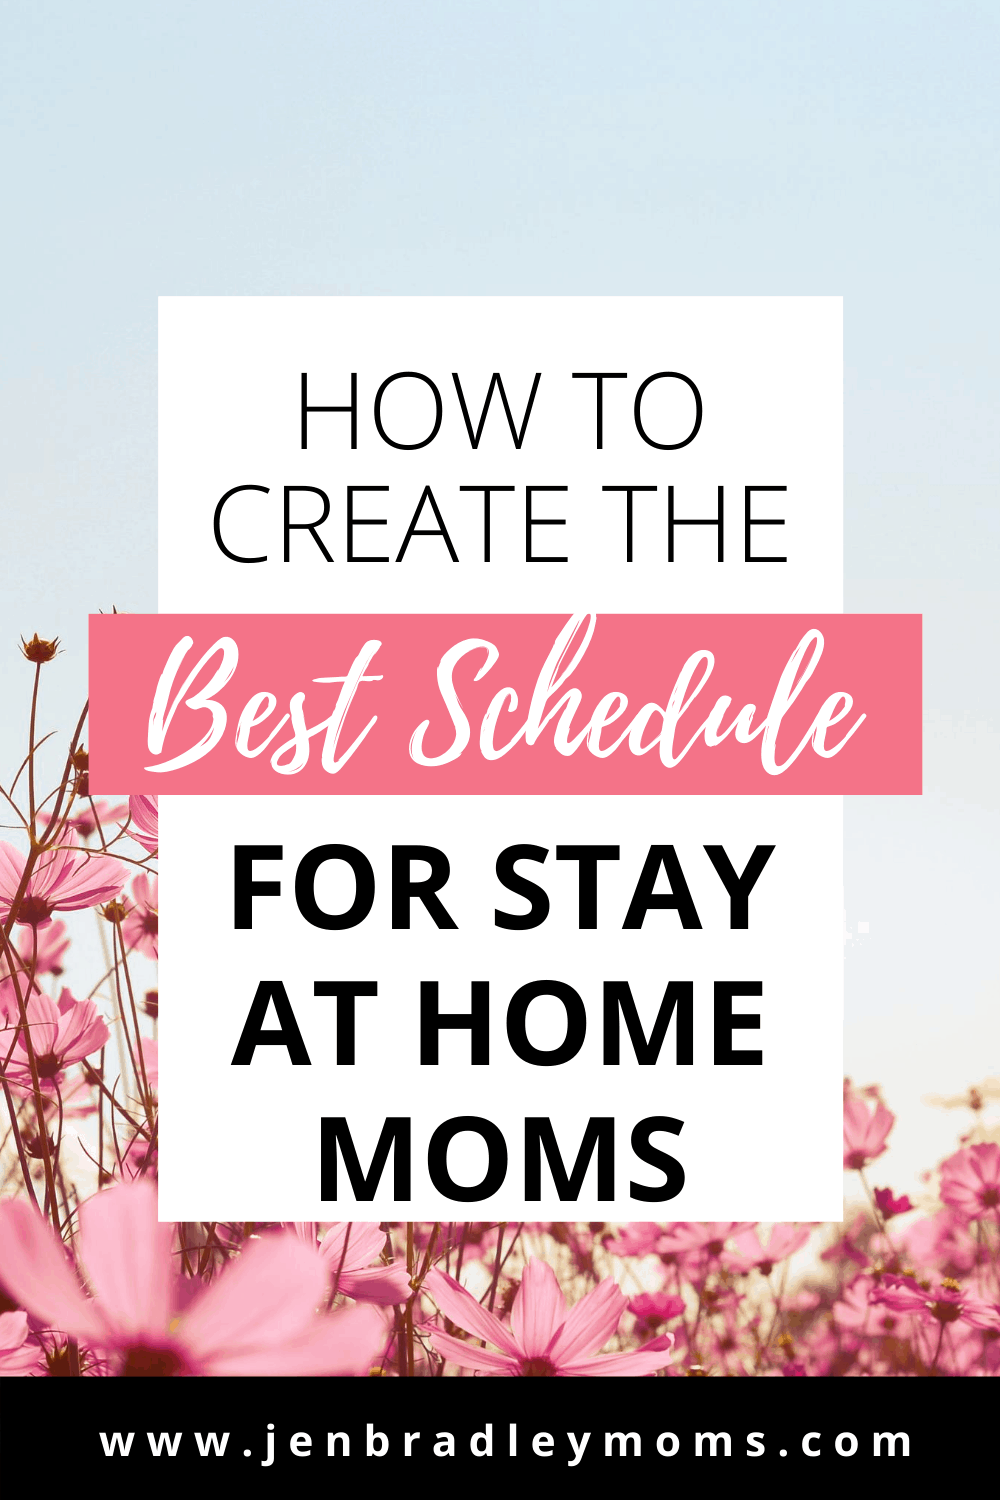 How to Create the Best Stay at Home Mom Schedule